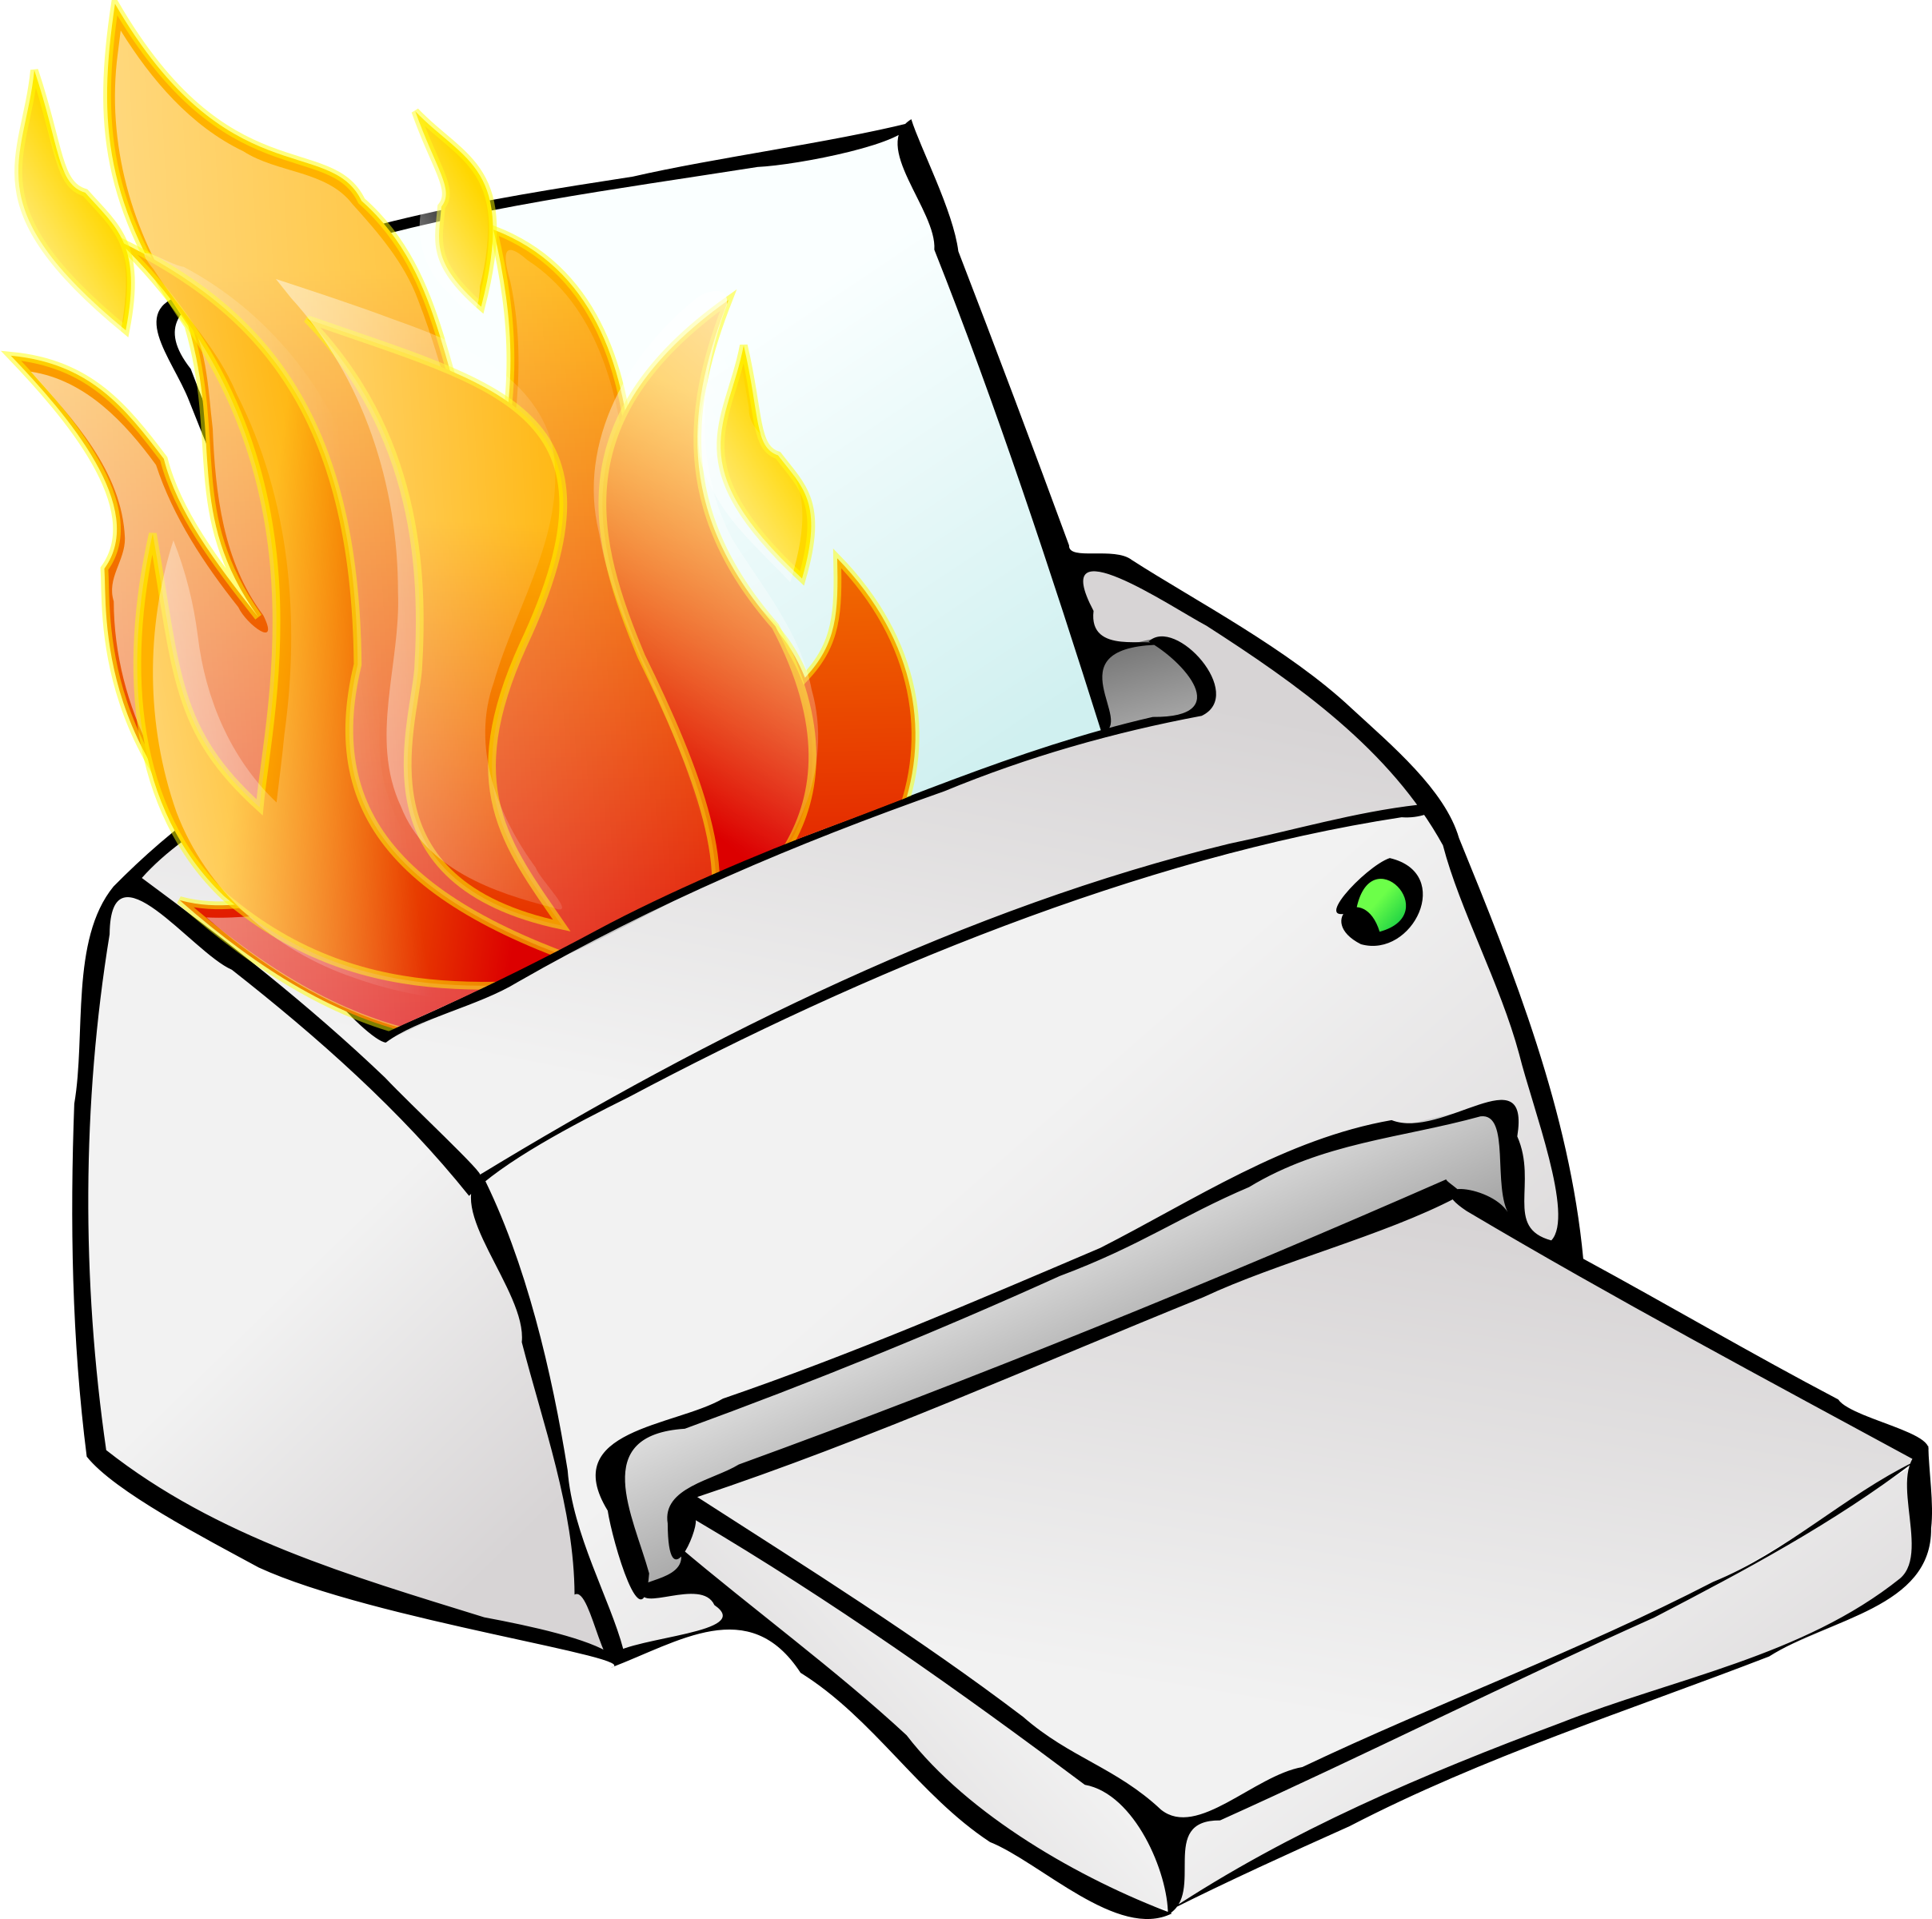 Fire clipart clip art. Printer on big image